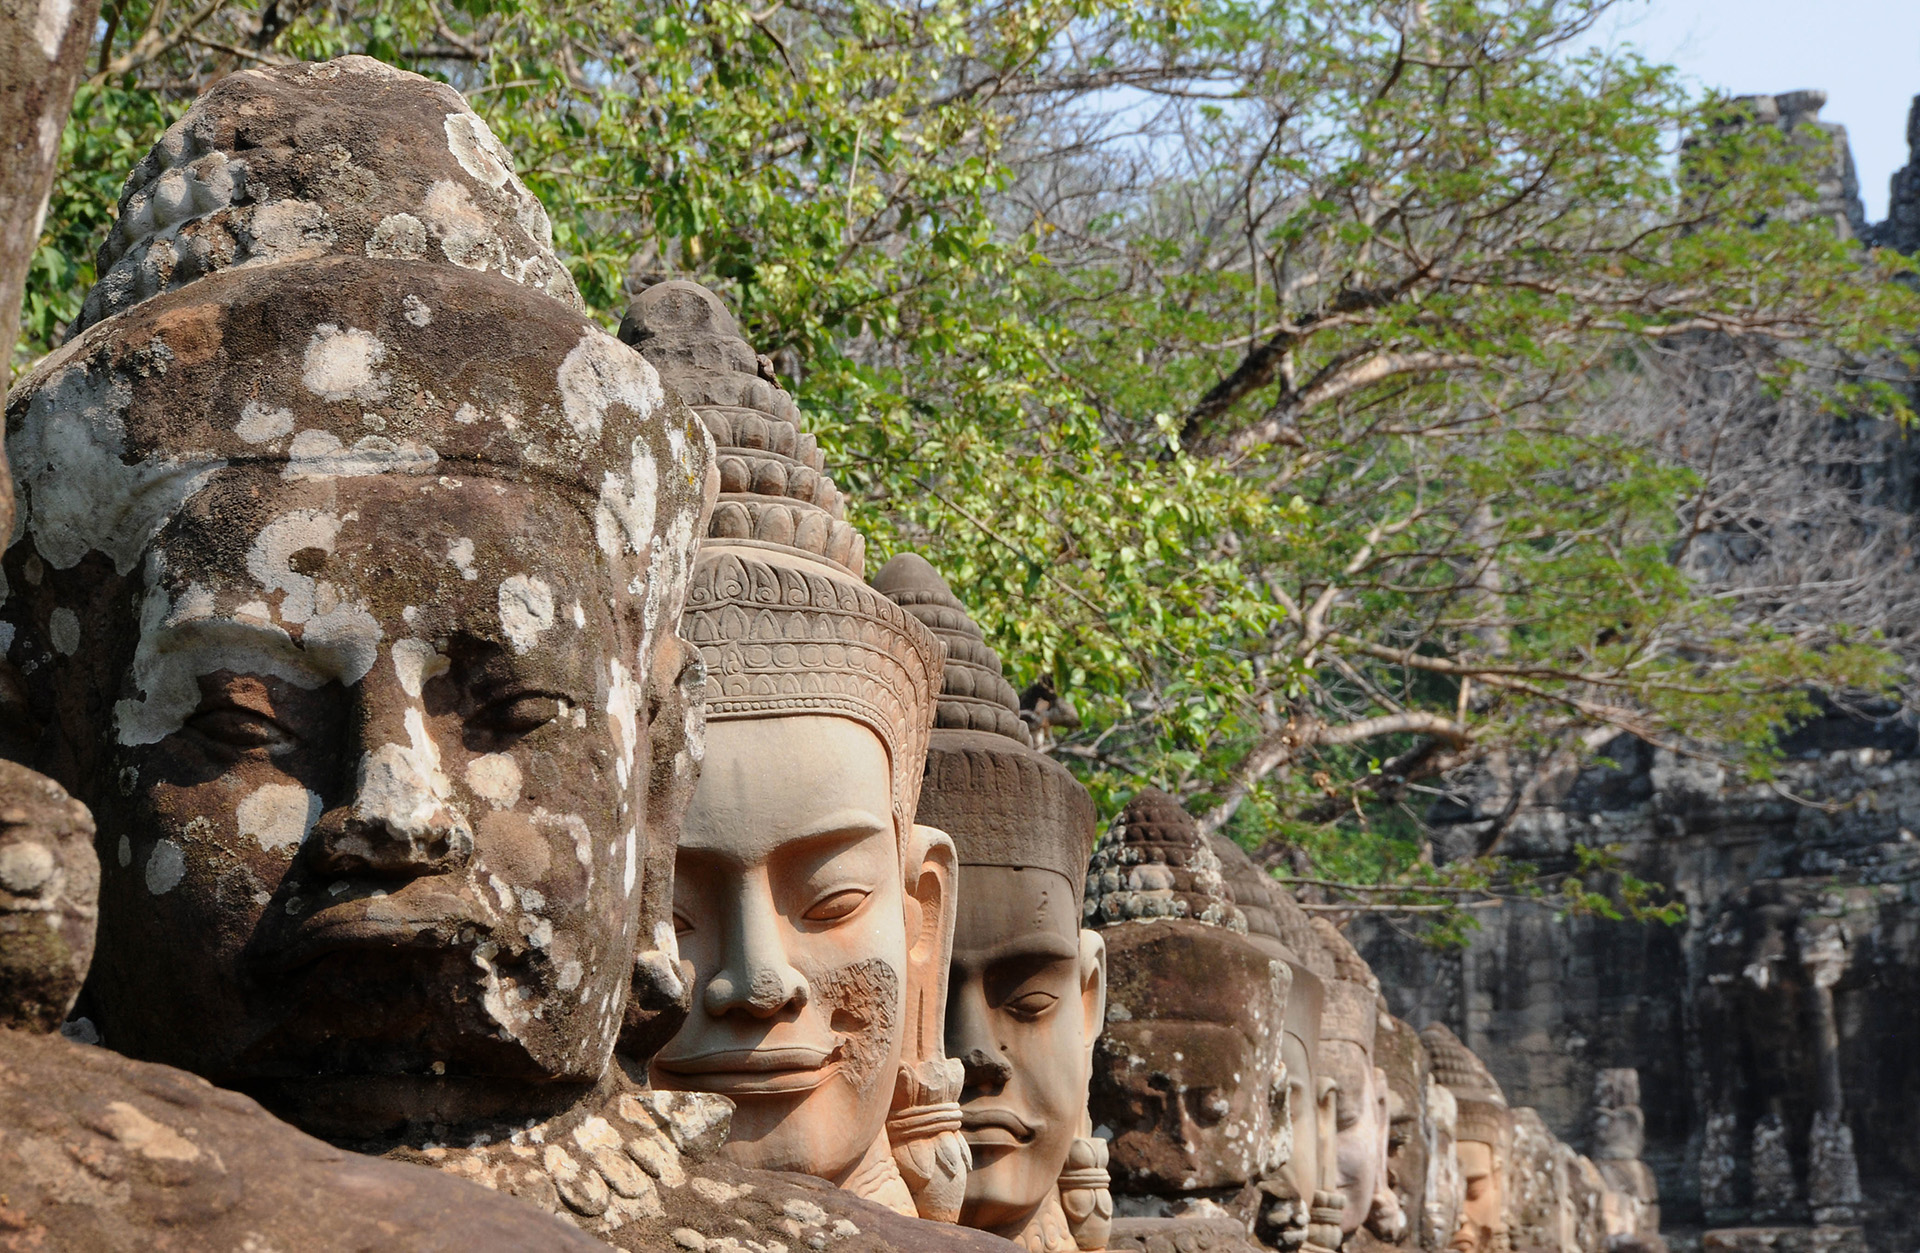 Statues lining the bridge outside the south gate of Angkor Thom, Cambodia